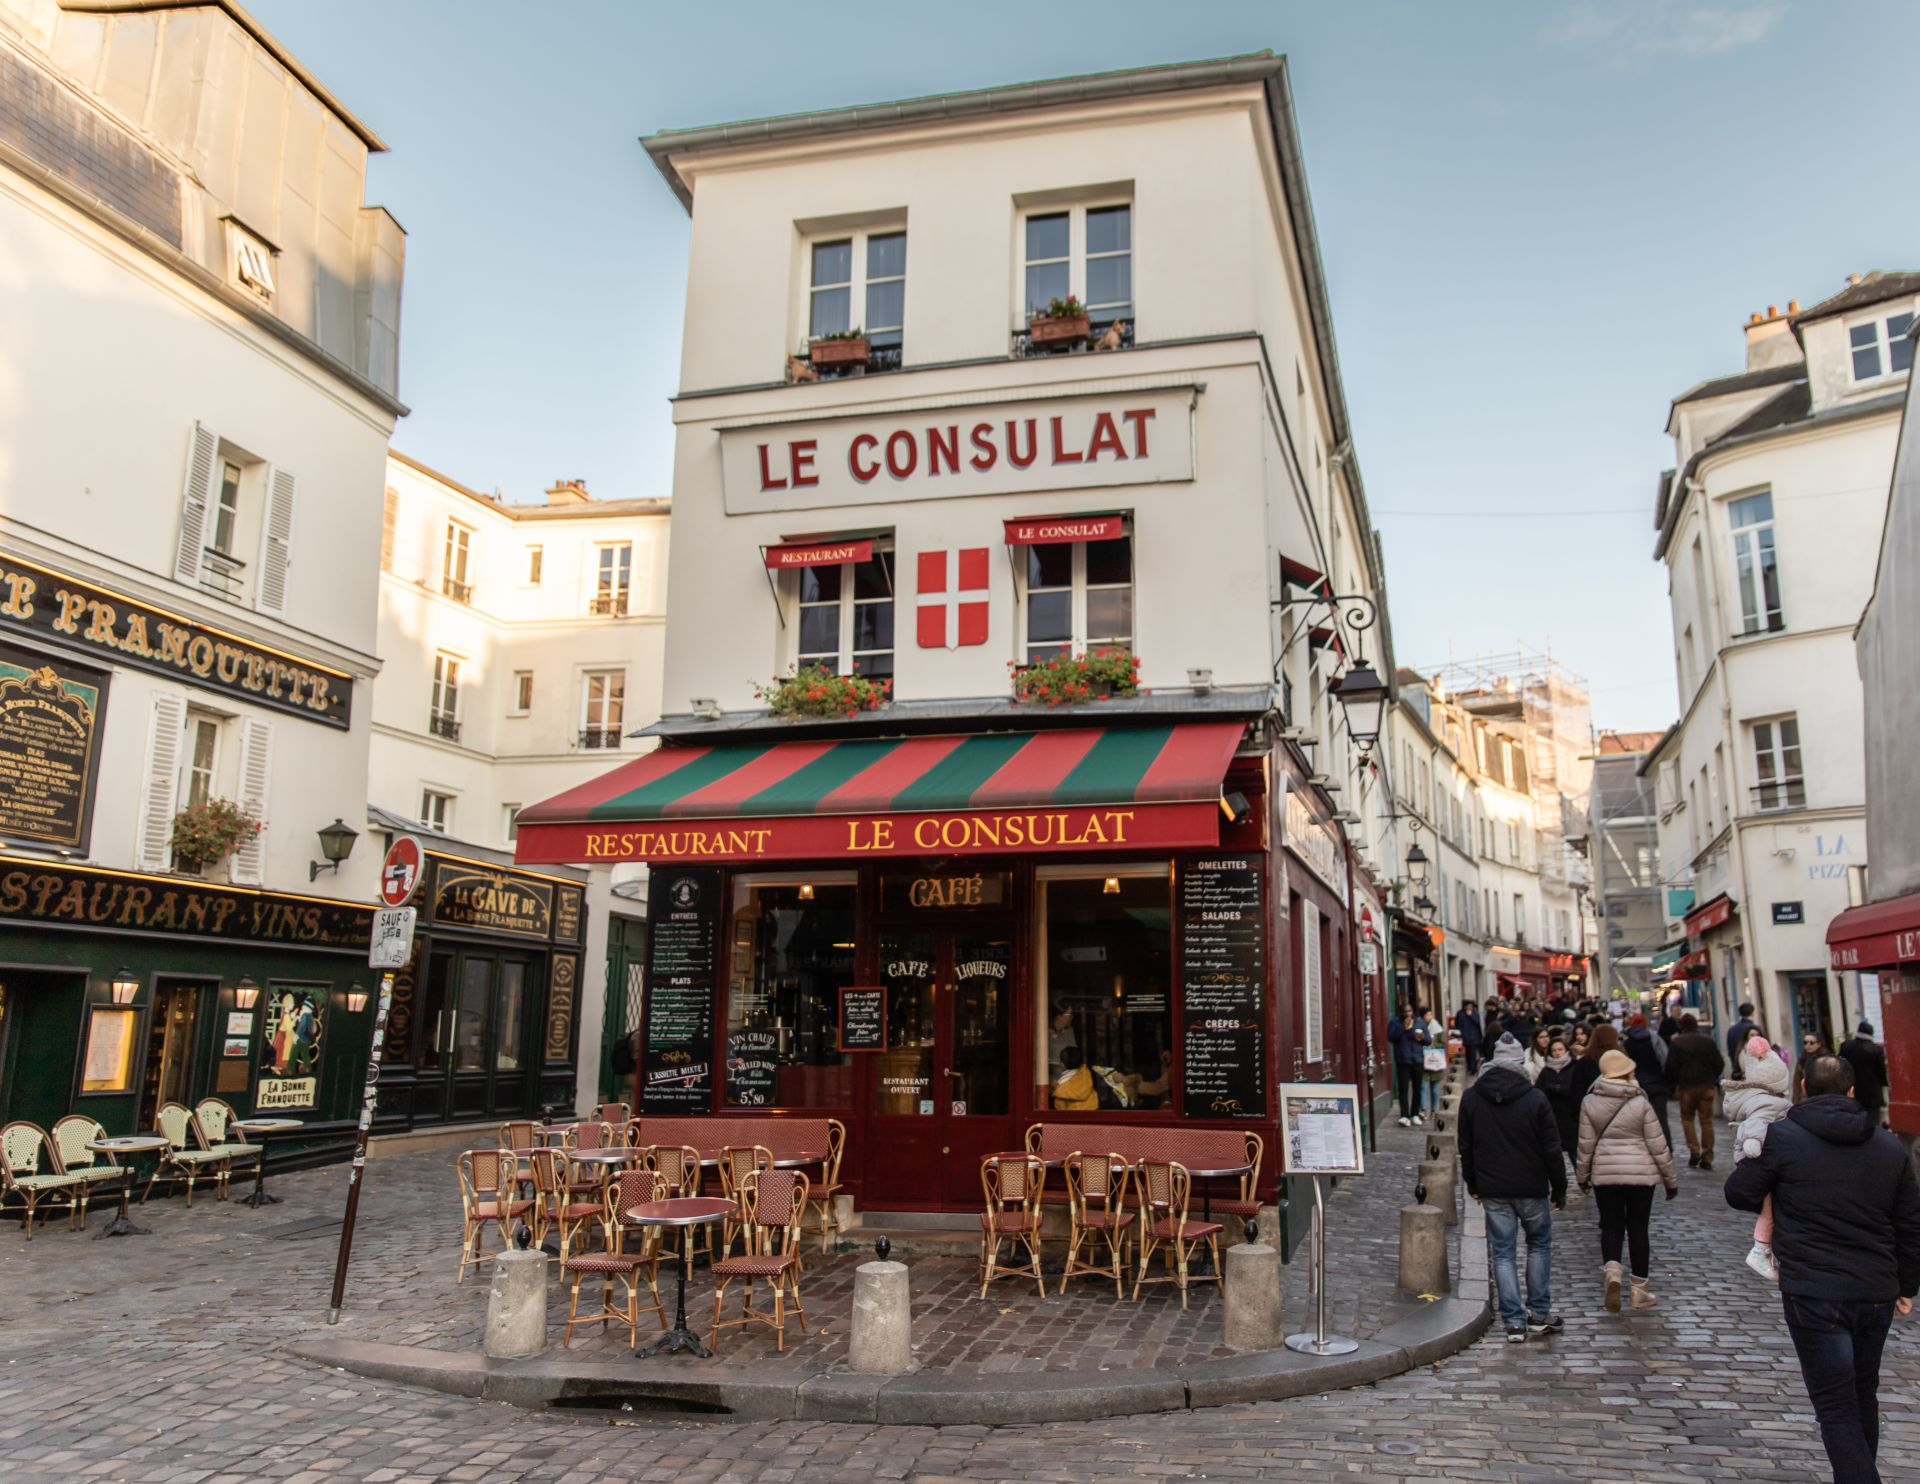 Le Consulat Restaurant in Montmarte neighborhood in Paris France